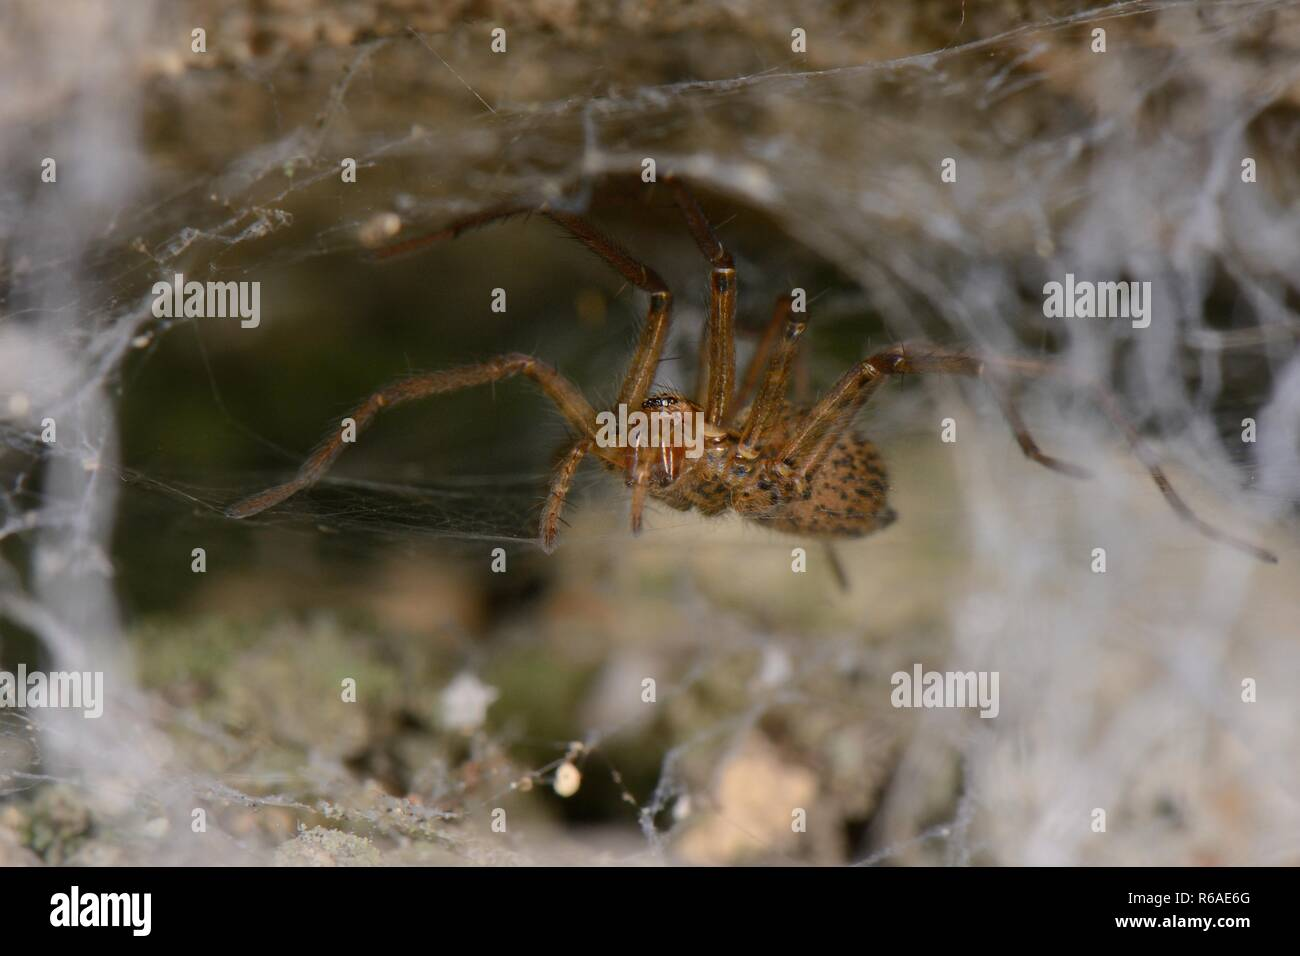 Female House spider (Tegenaria sp.) on her web in an old stone wall, Wiltshire, UK, October. - Stock Image